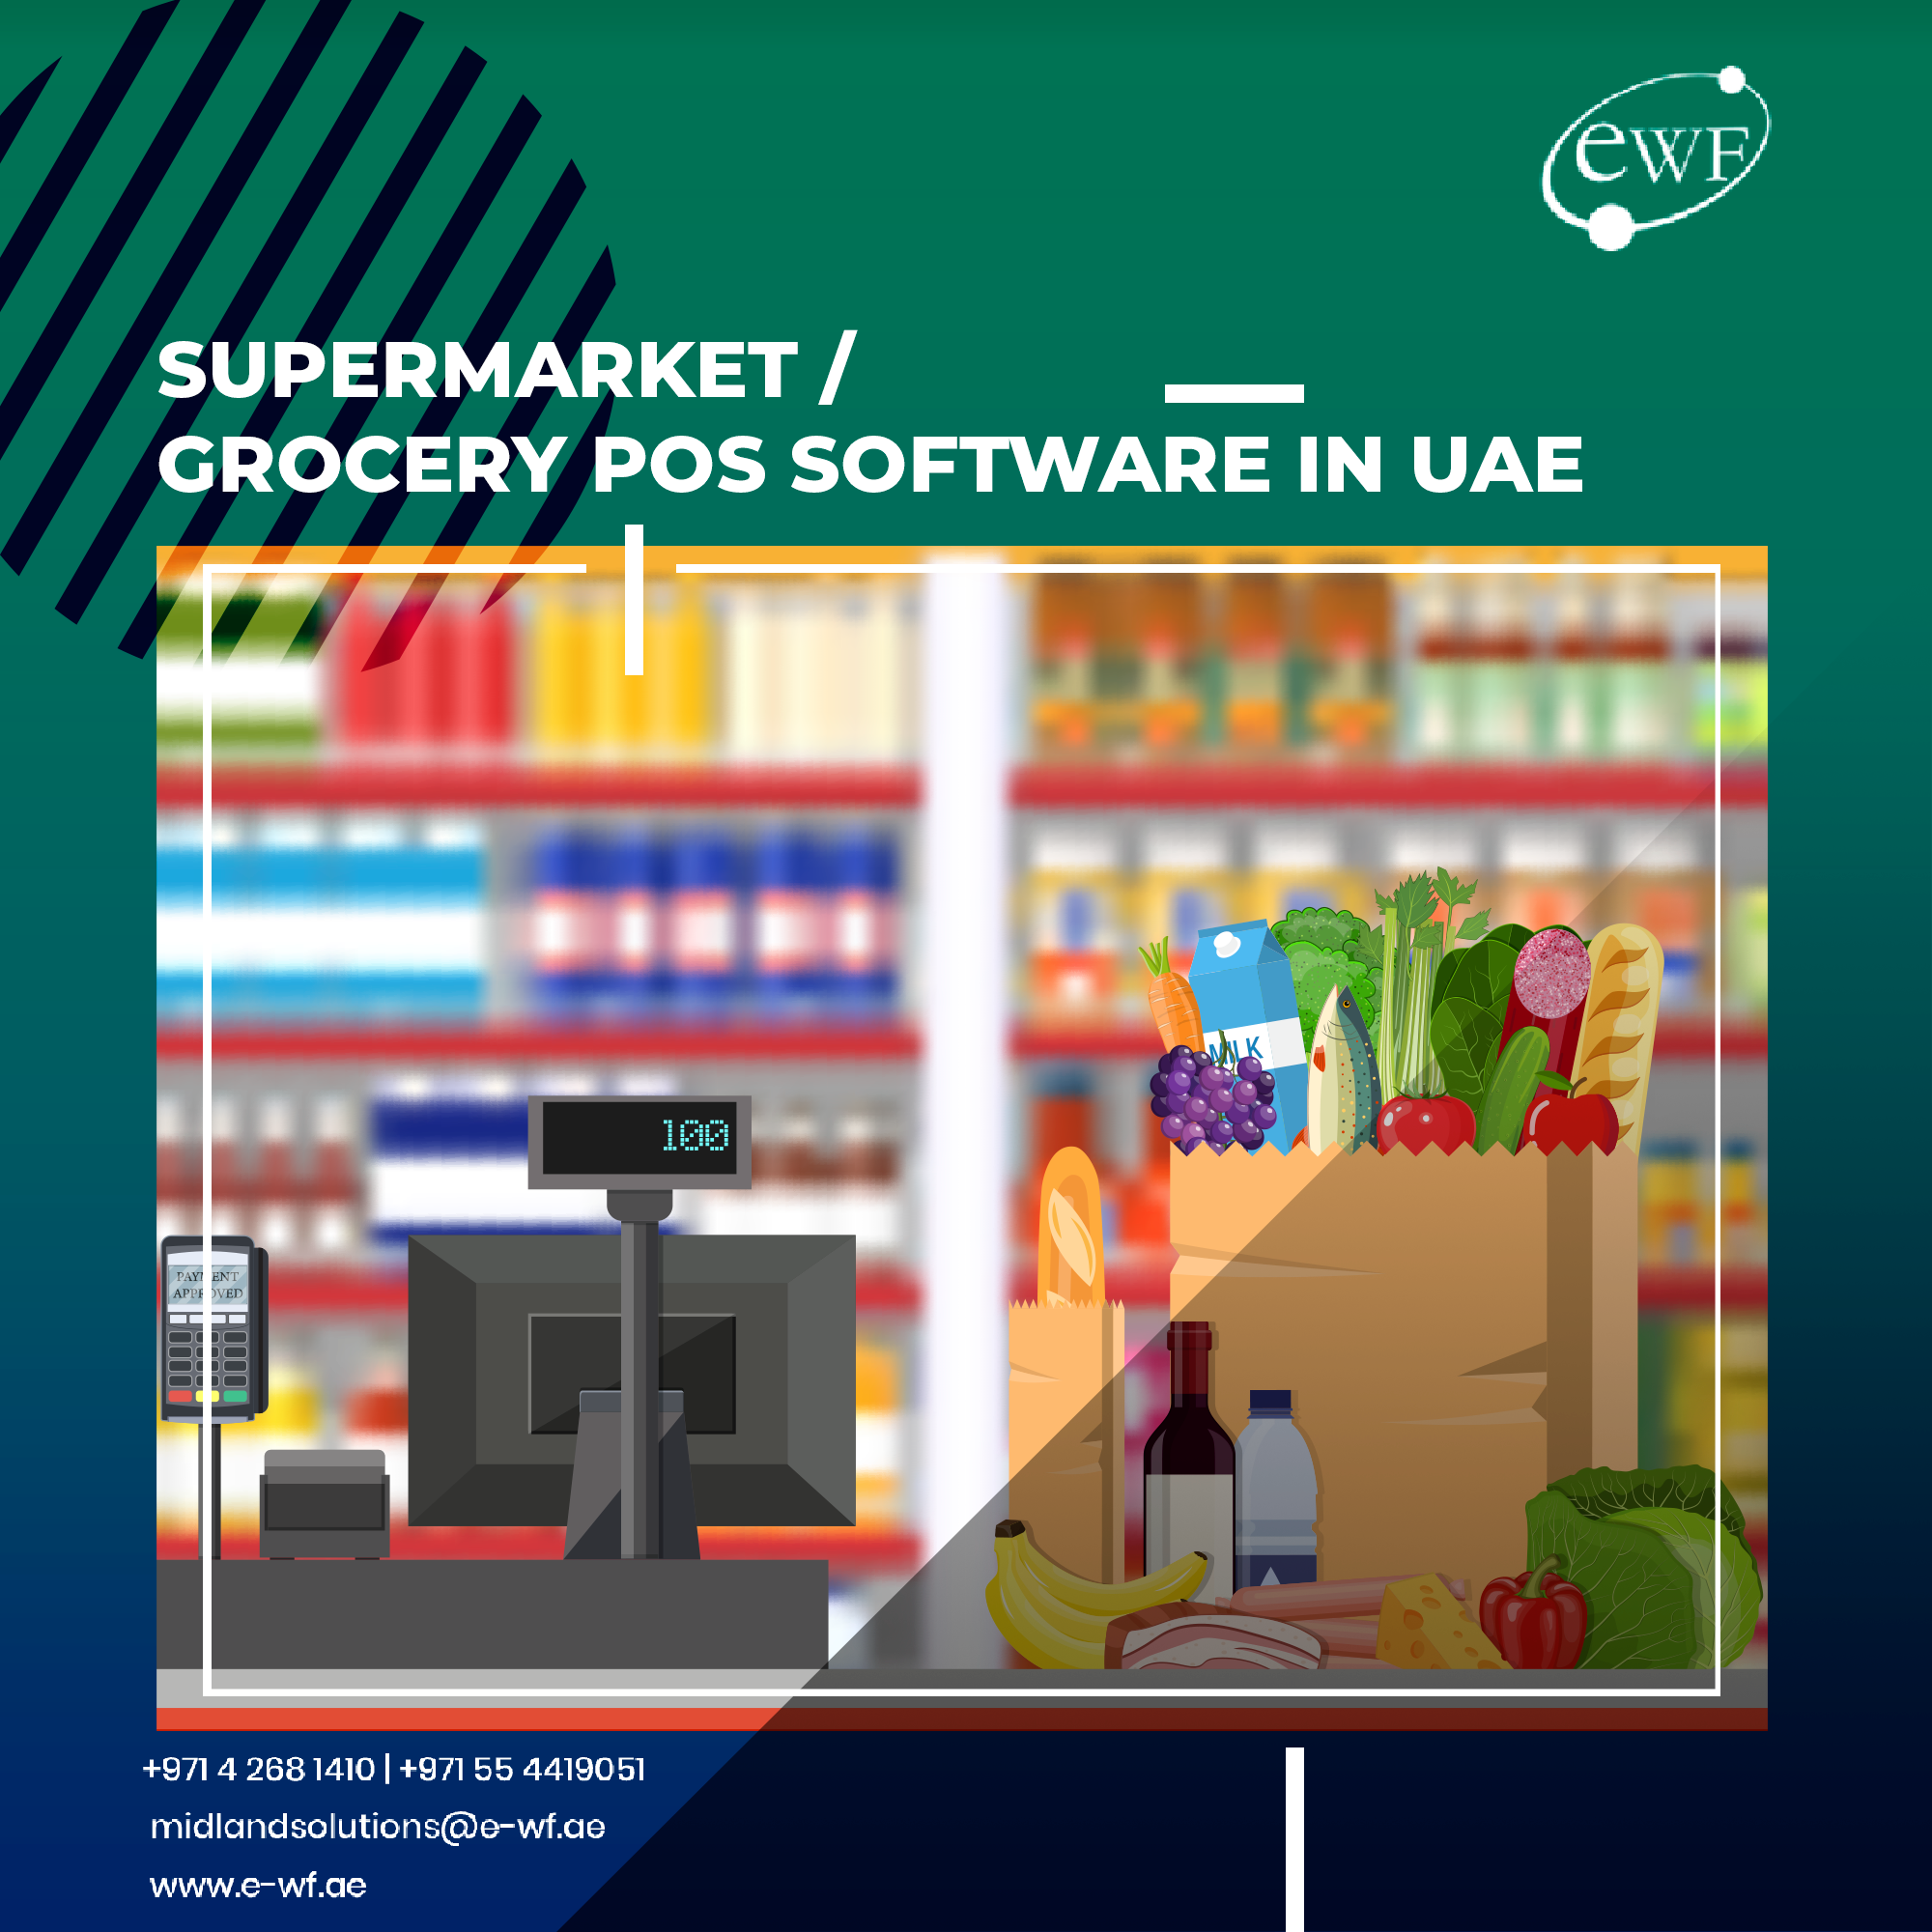 Supermarket store software and POS systems to help food